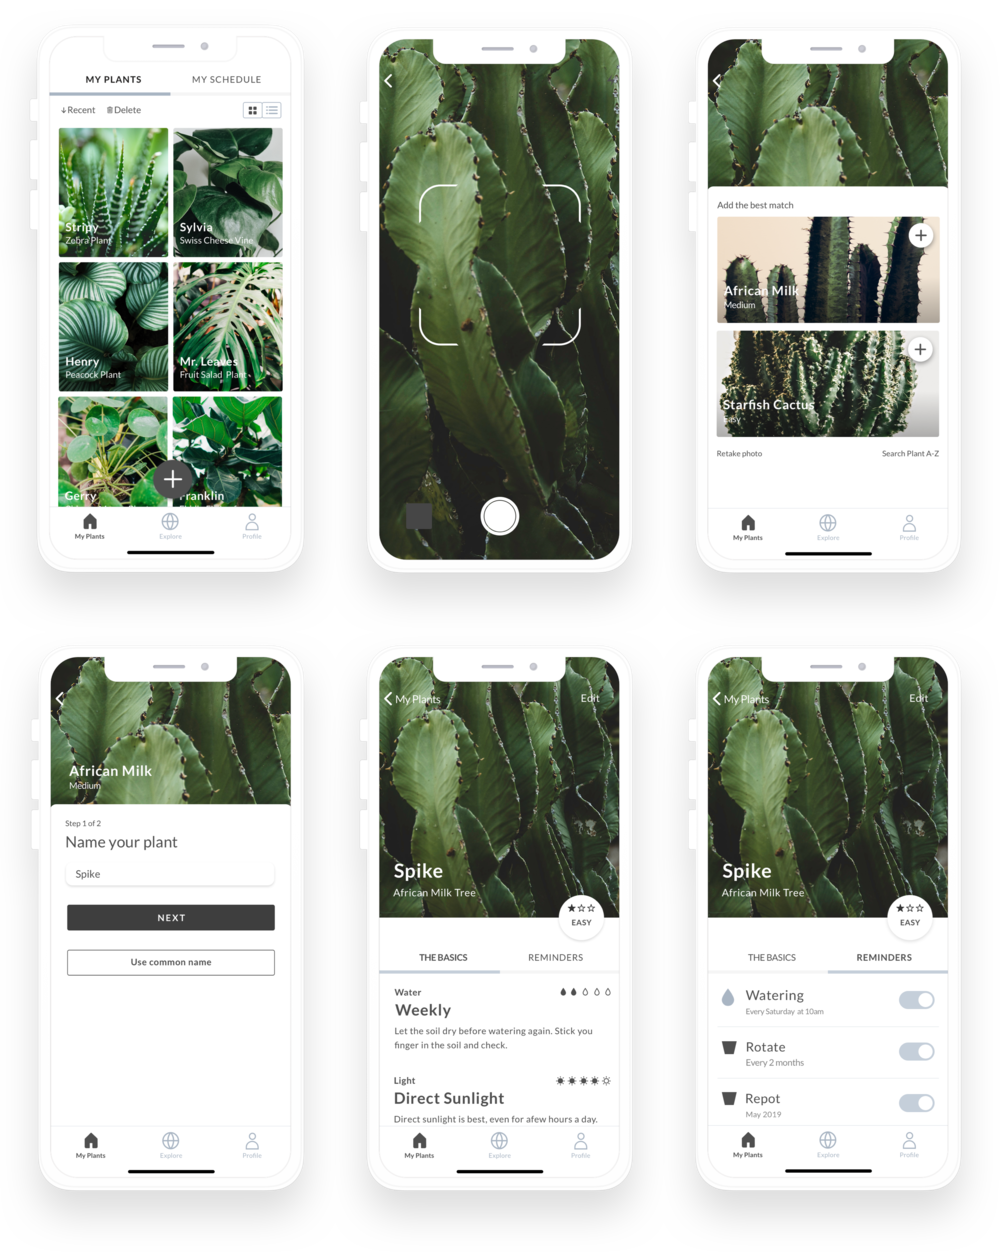 UI rolled out across the task flow of adding a plant to the users personal collection.